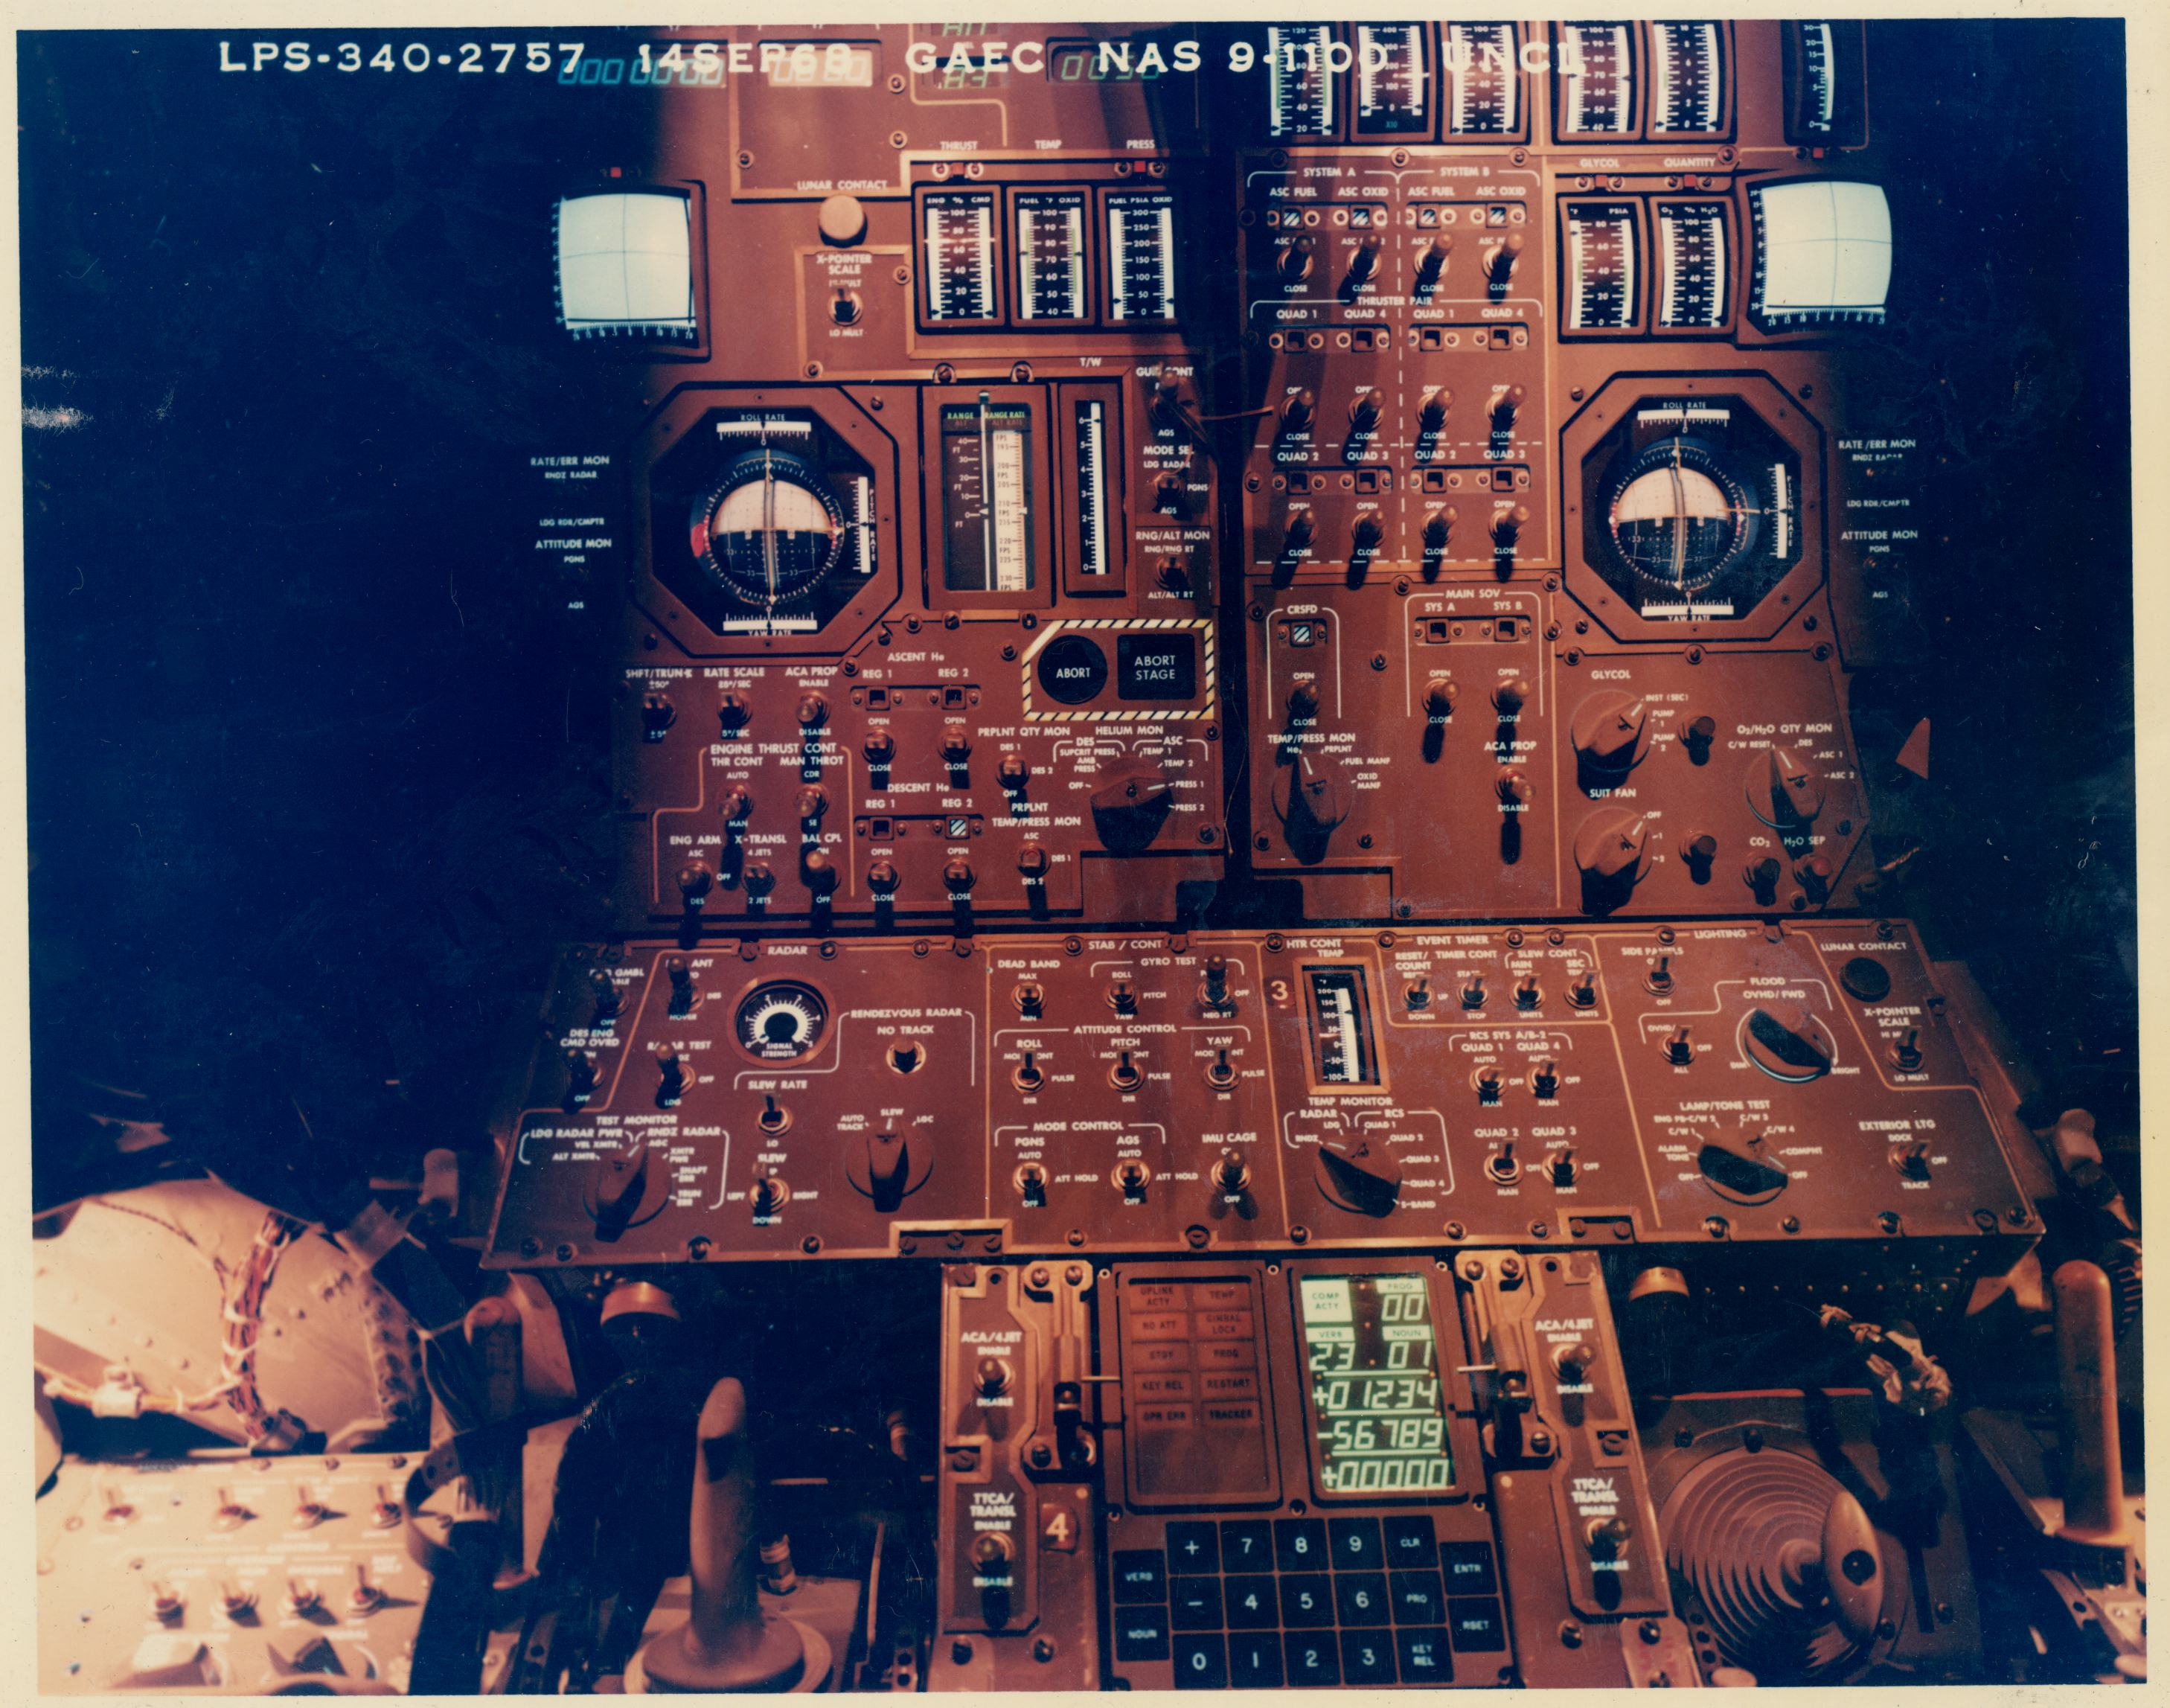 apollo capsule control panel - photo #42